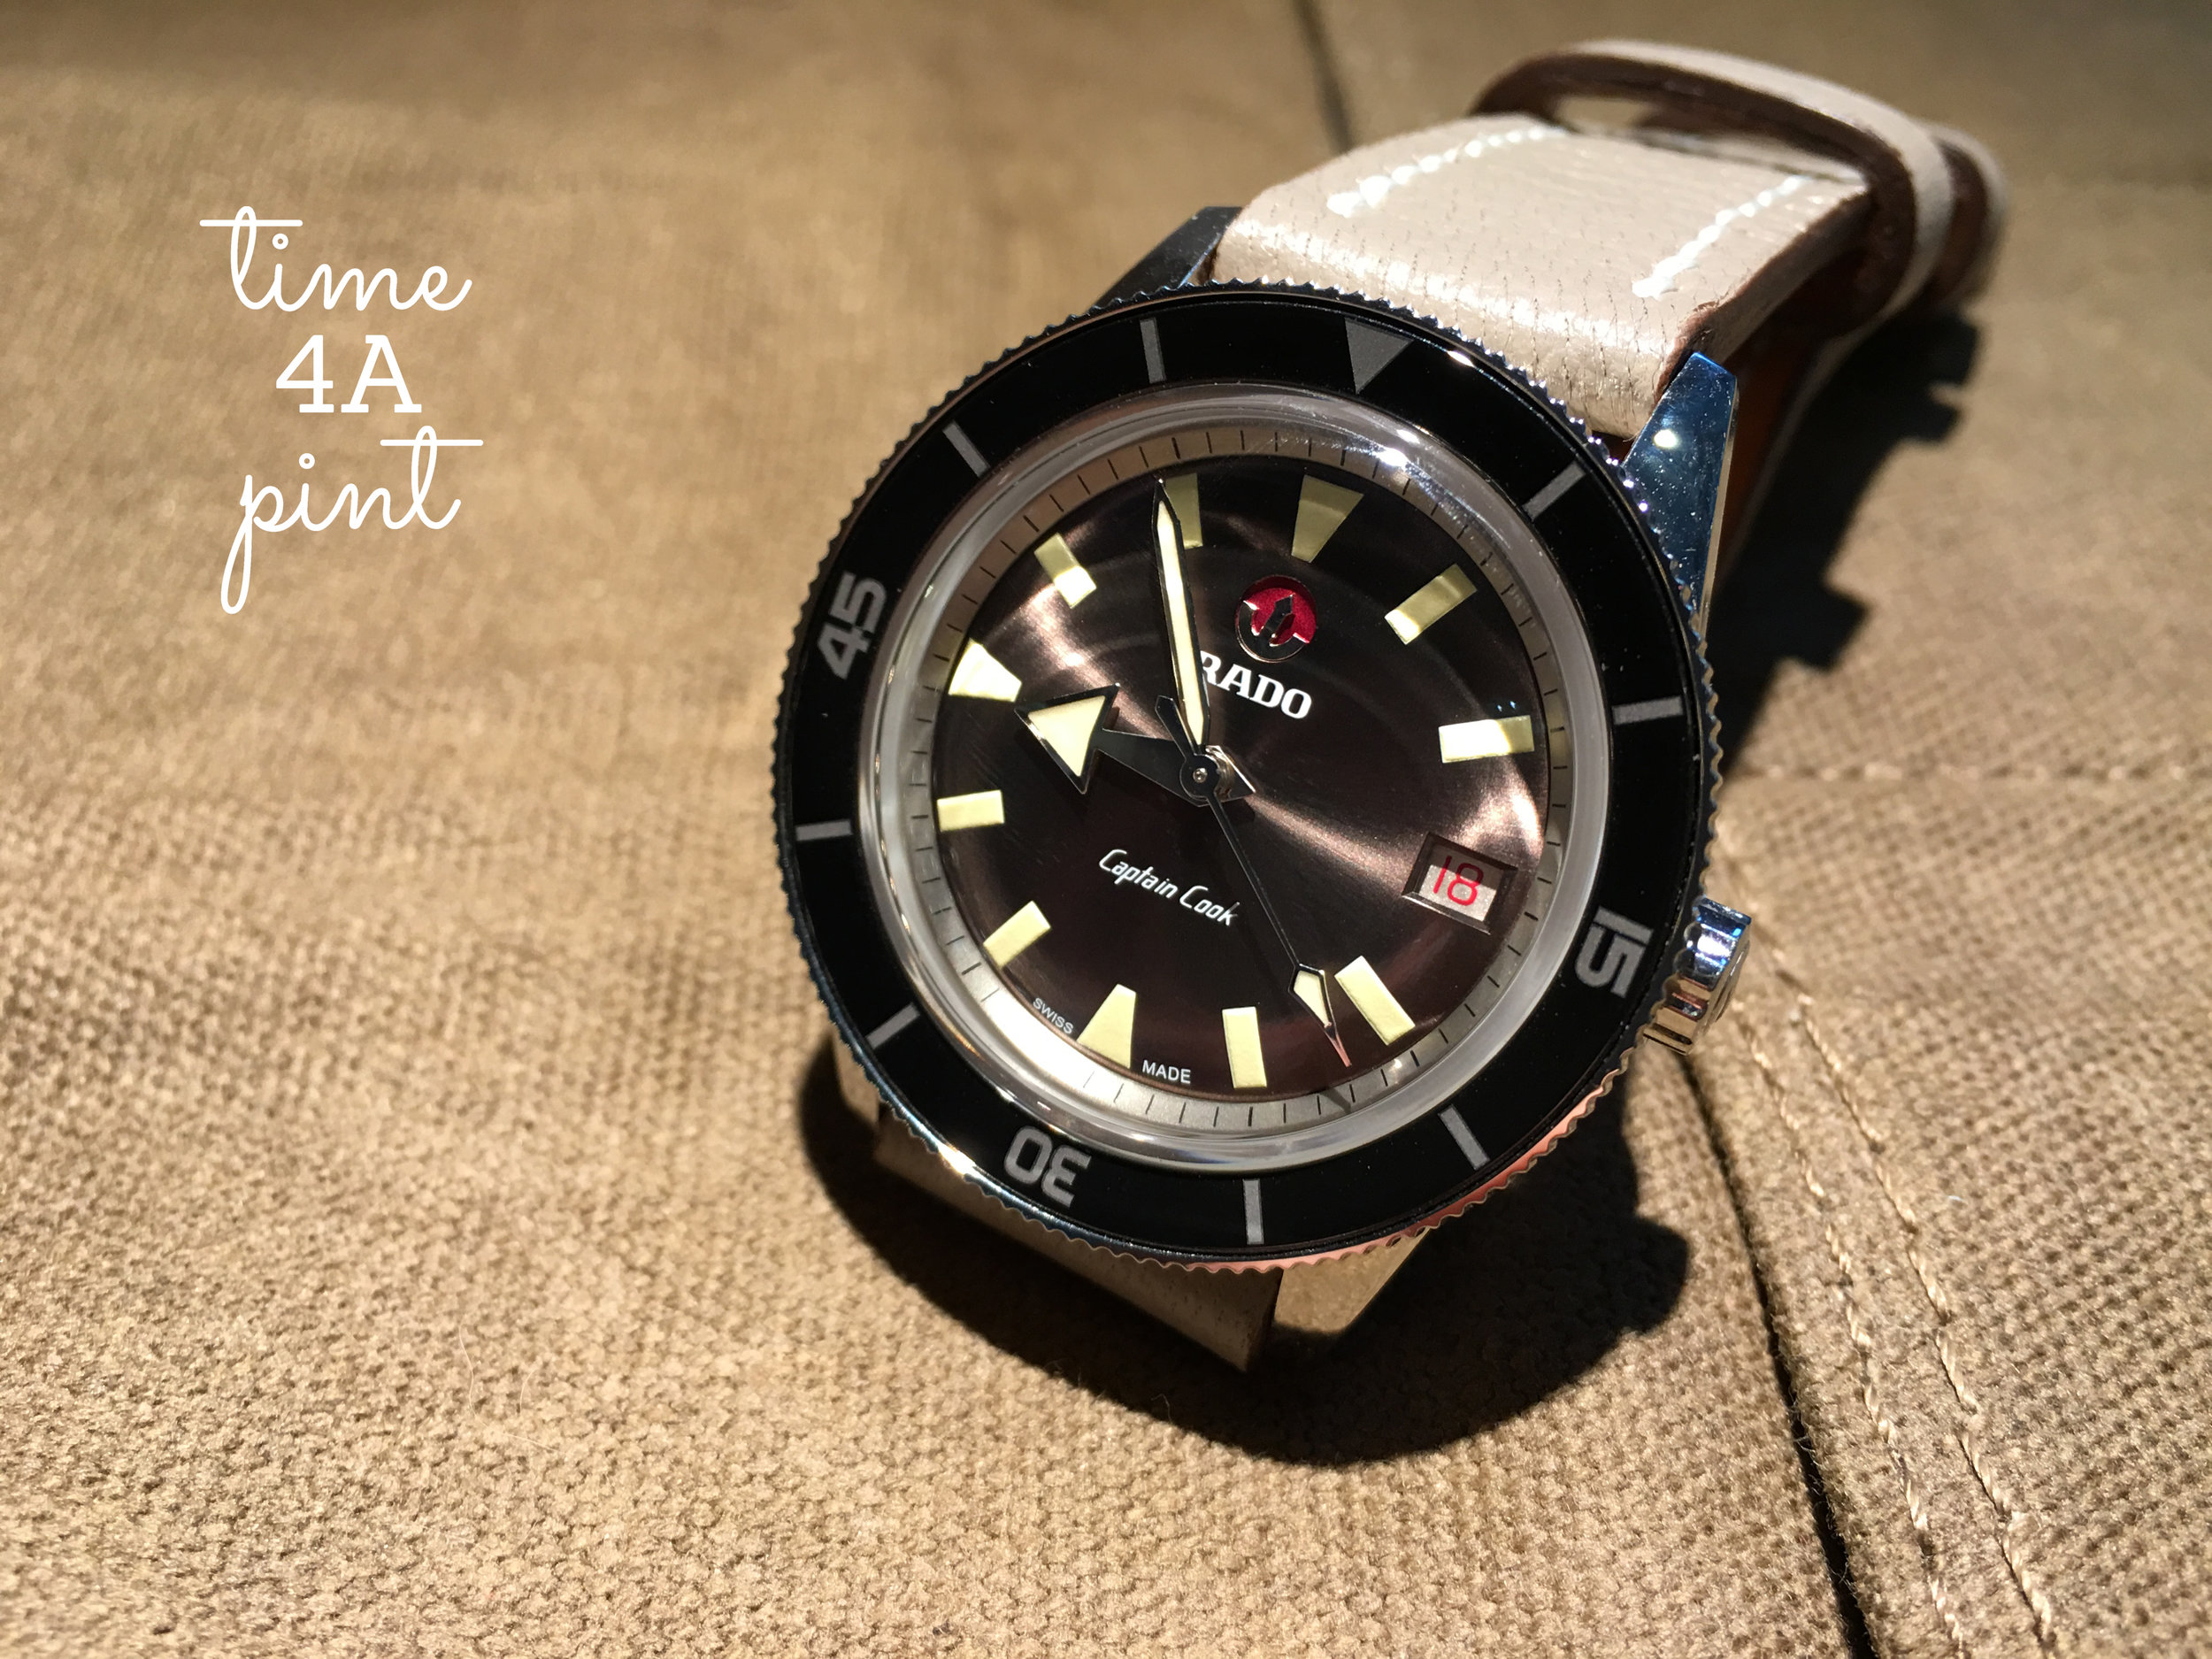 Rado Captain Cook LE Ref. 01.763.0500.3.130